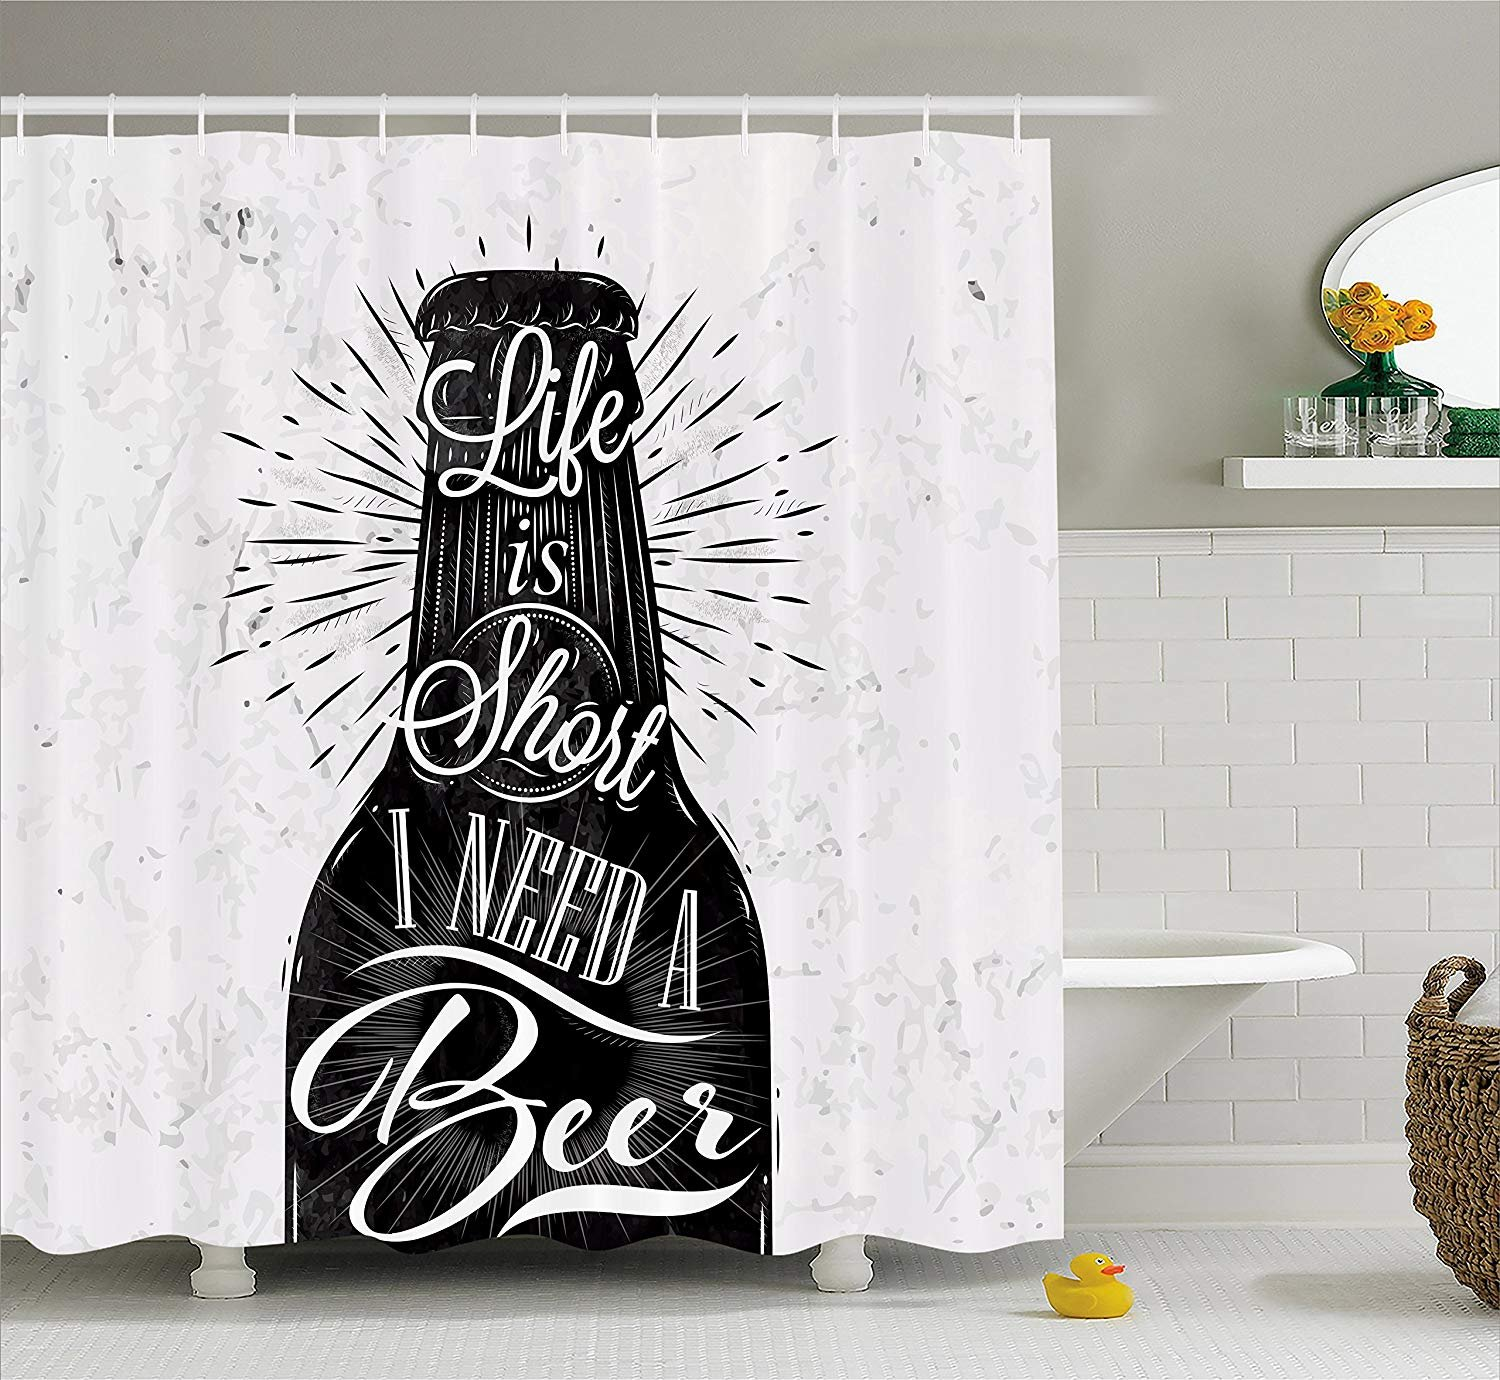 Ambesonne Manly Decor Collection, Wine Glass in Retro Vintage Style Lettering Life is Short I Need a Beer Pattern, Polyester Fabric Bathroom Shower Curtain, 84 Inches Extra Long, Black White Grey